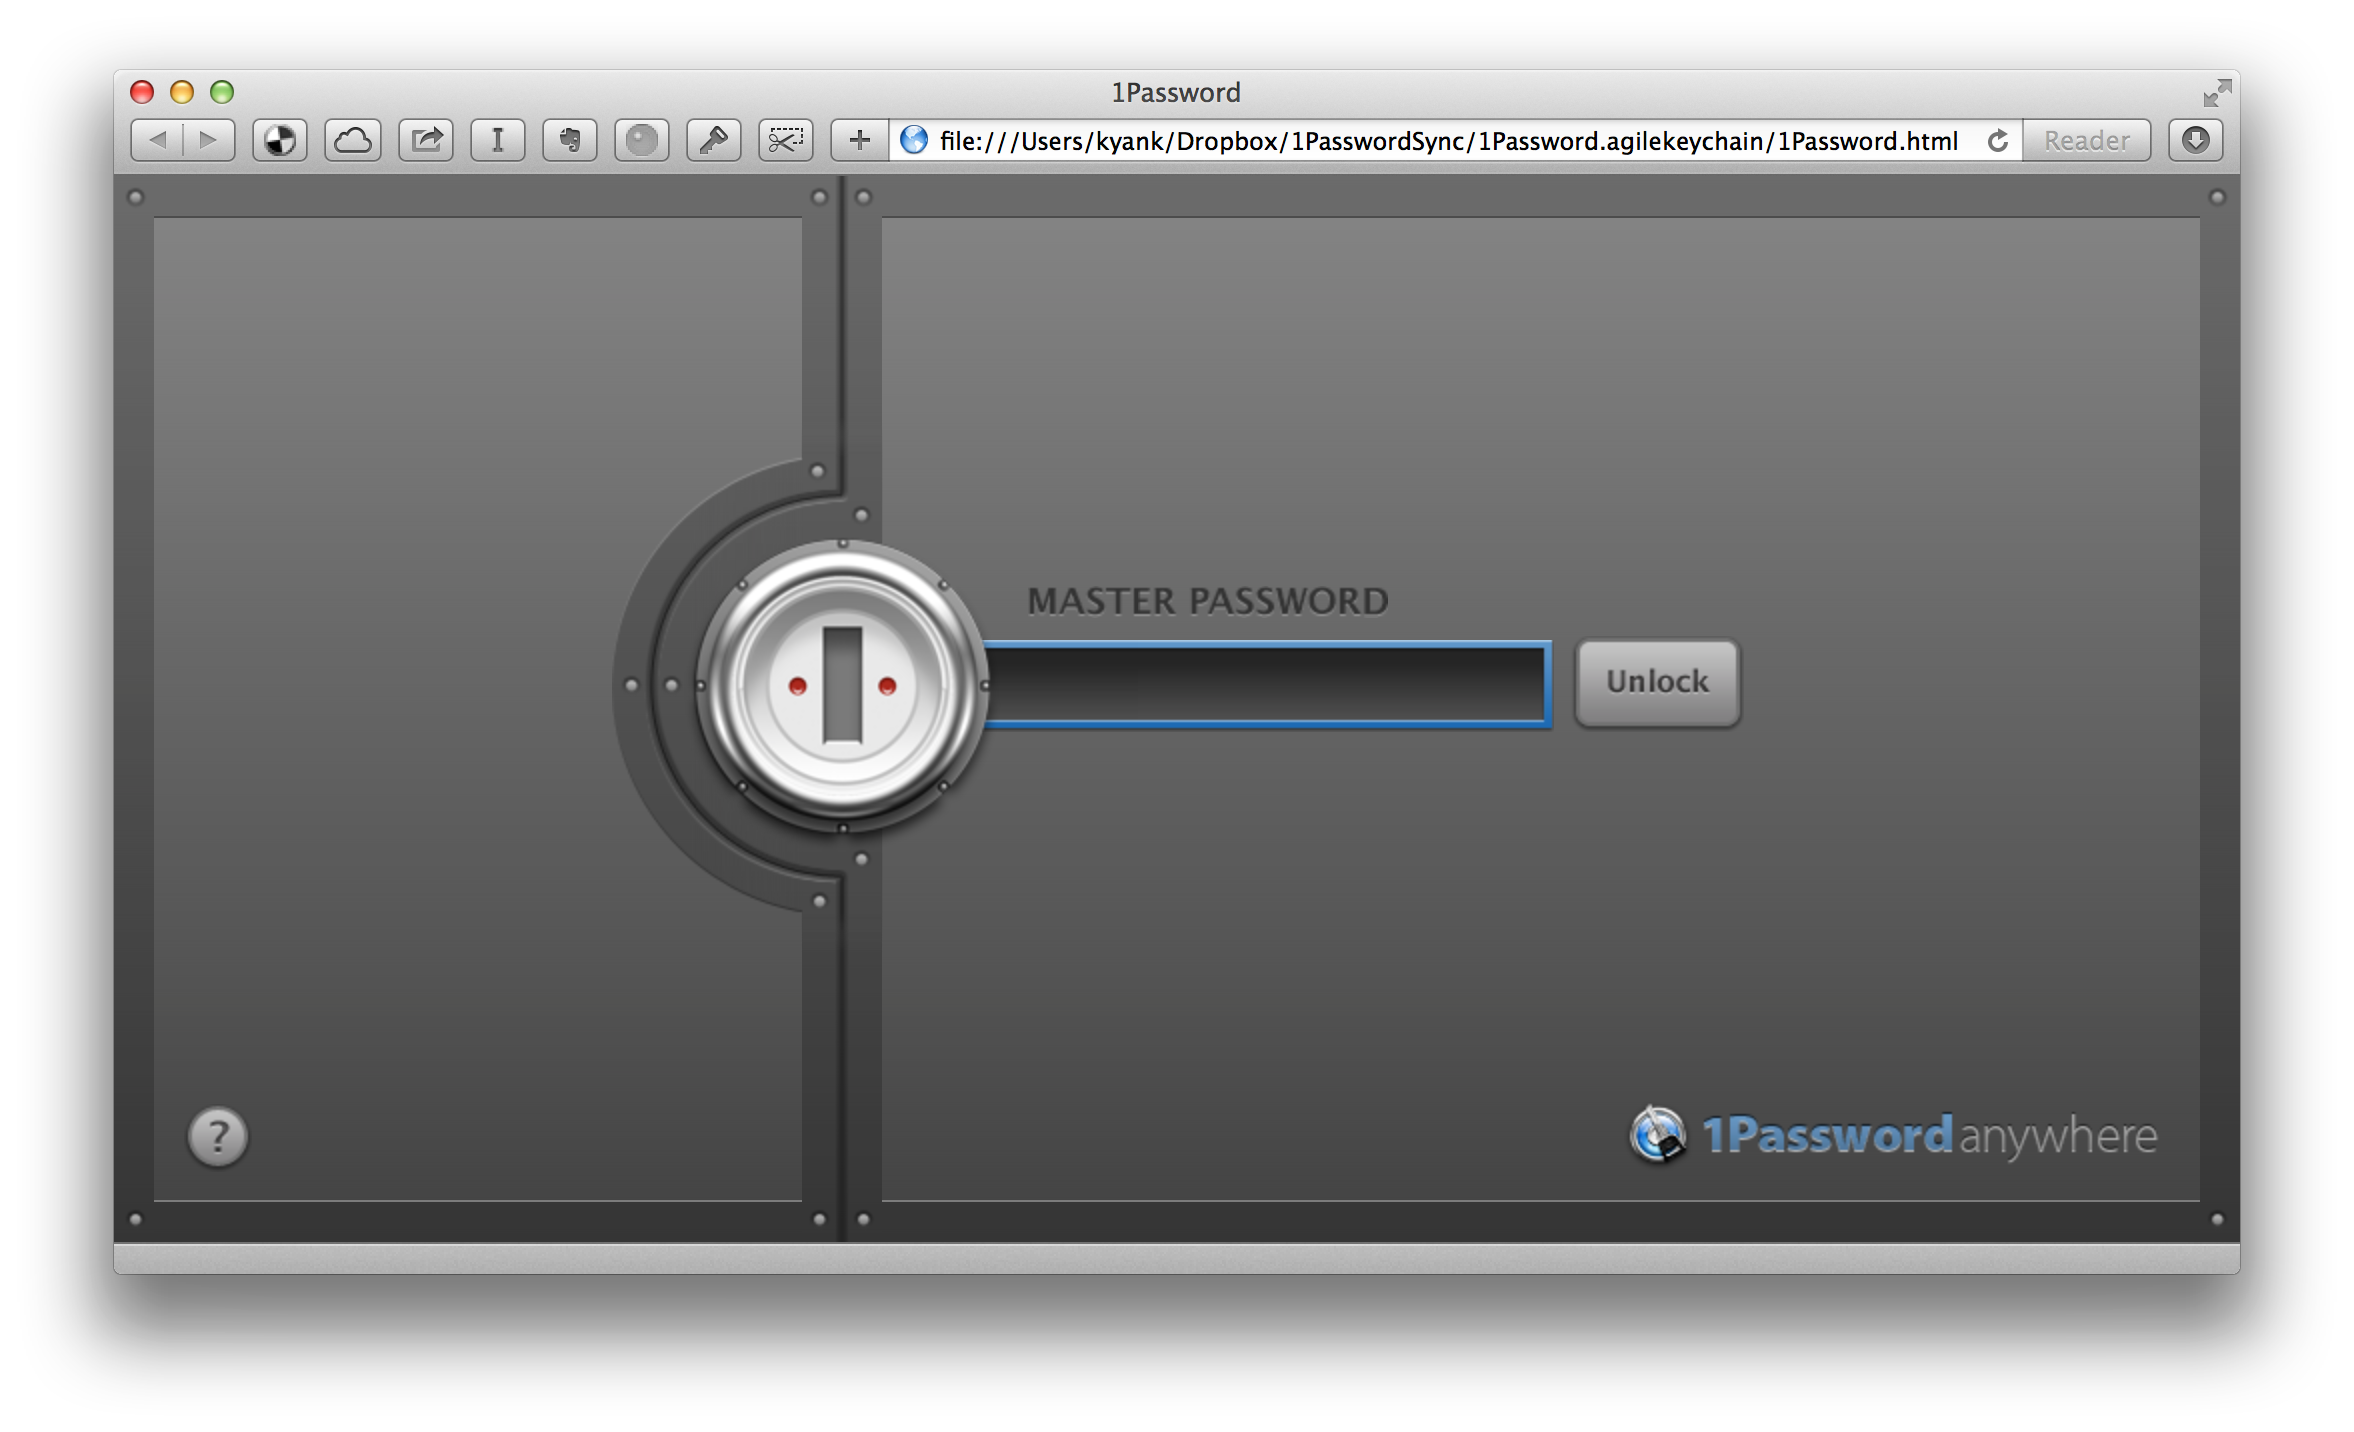 the 1Password Anywhere master password prompt